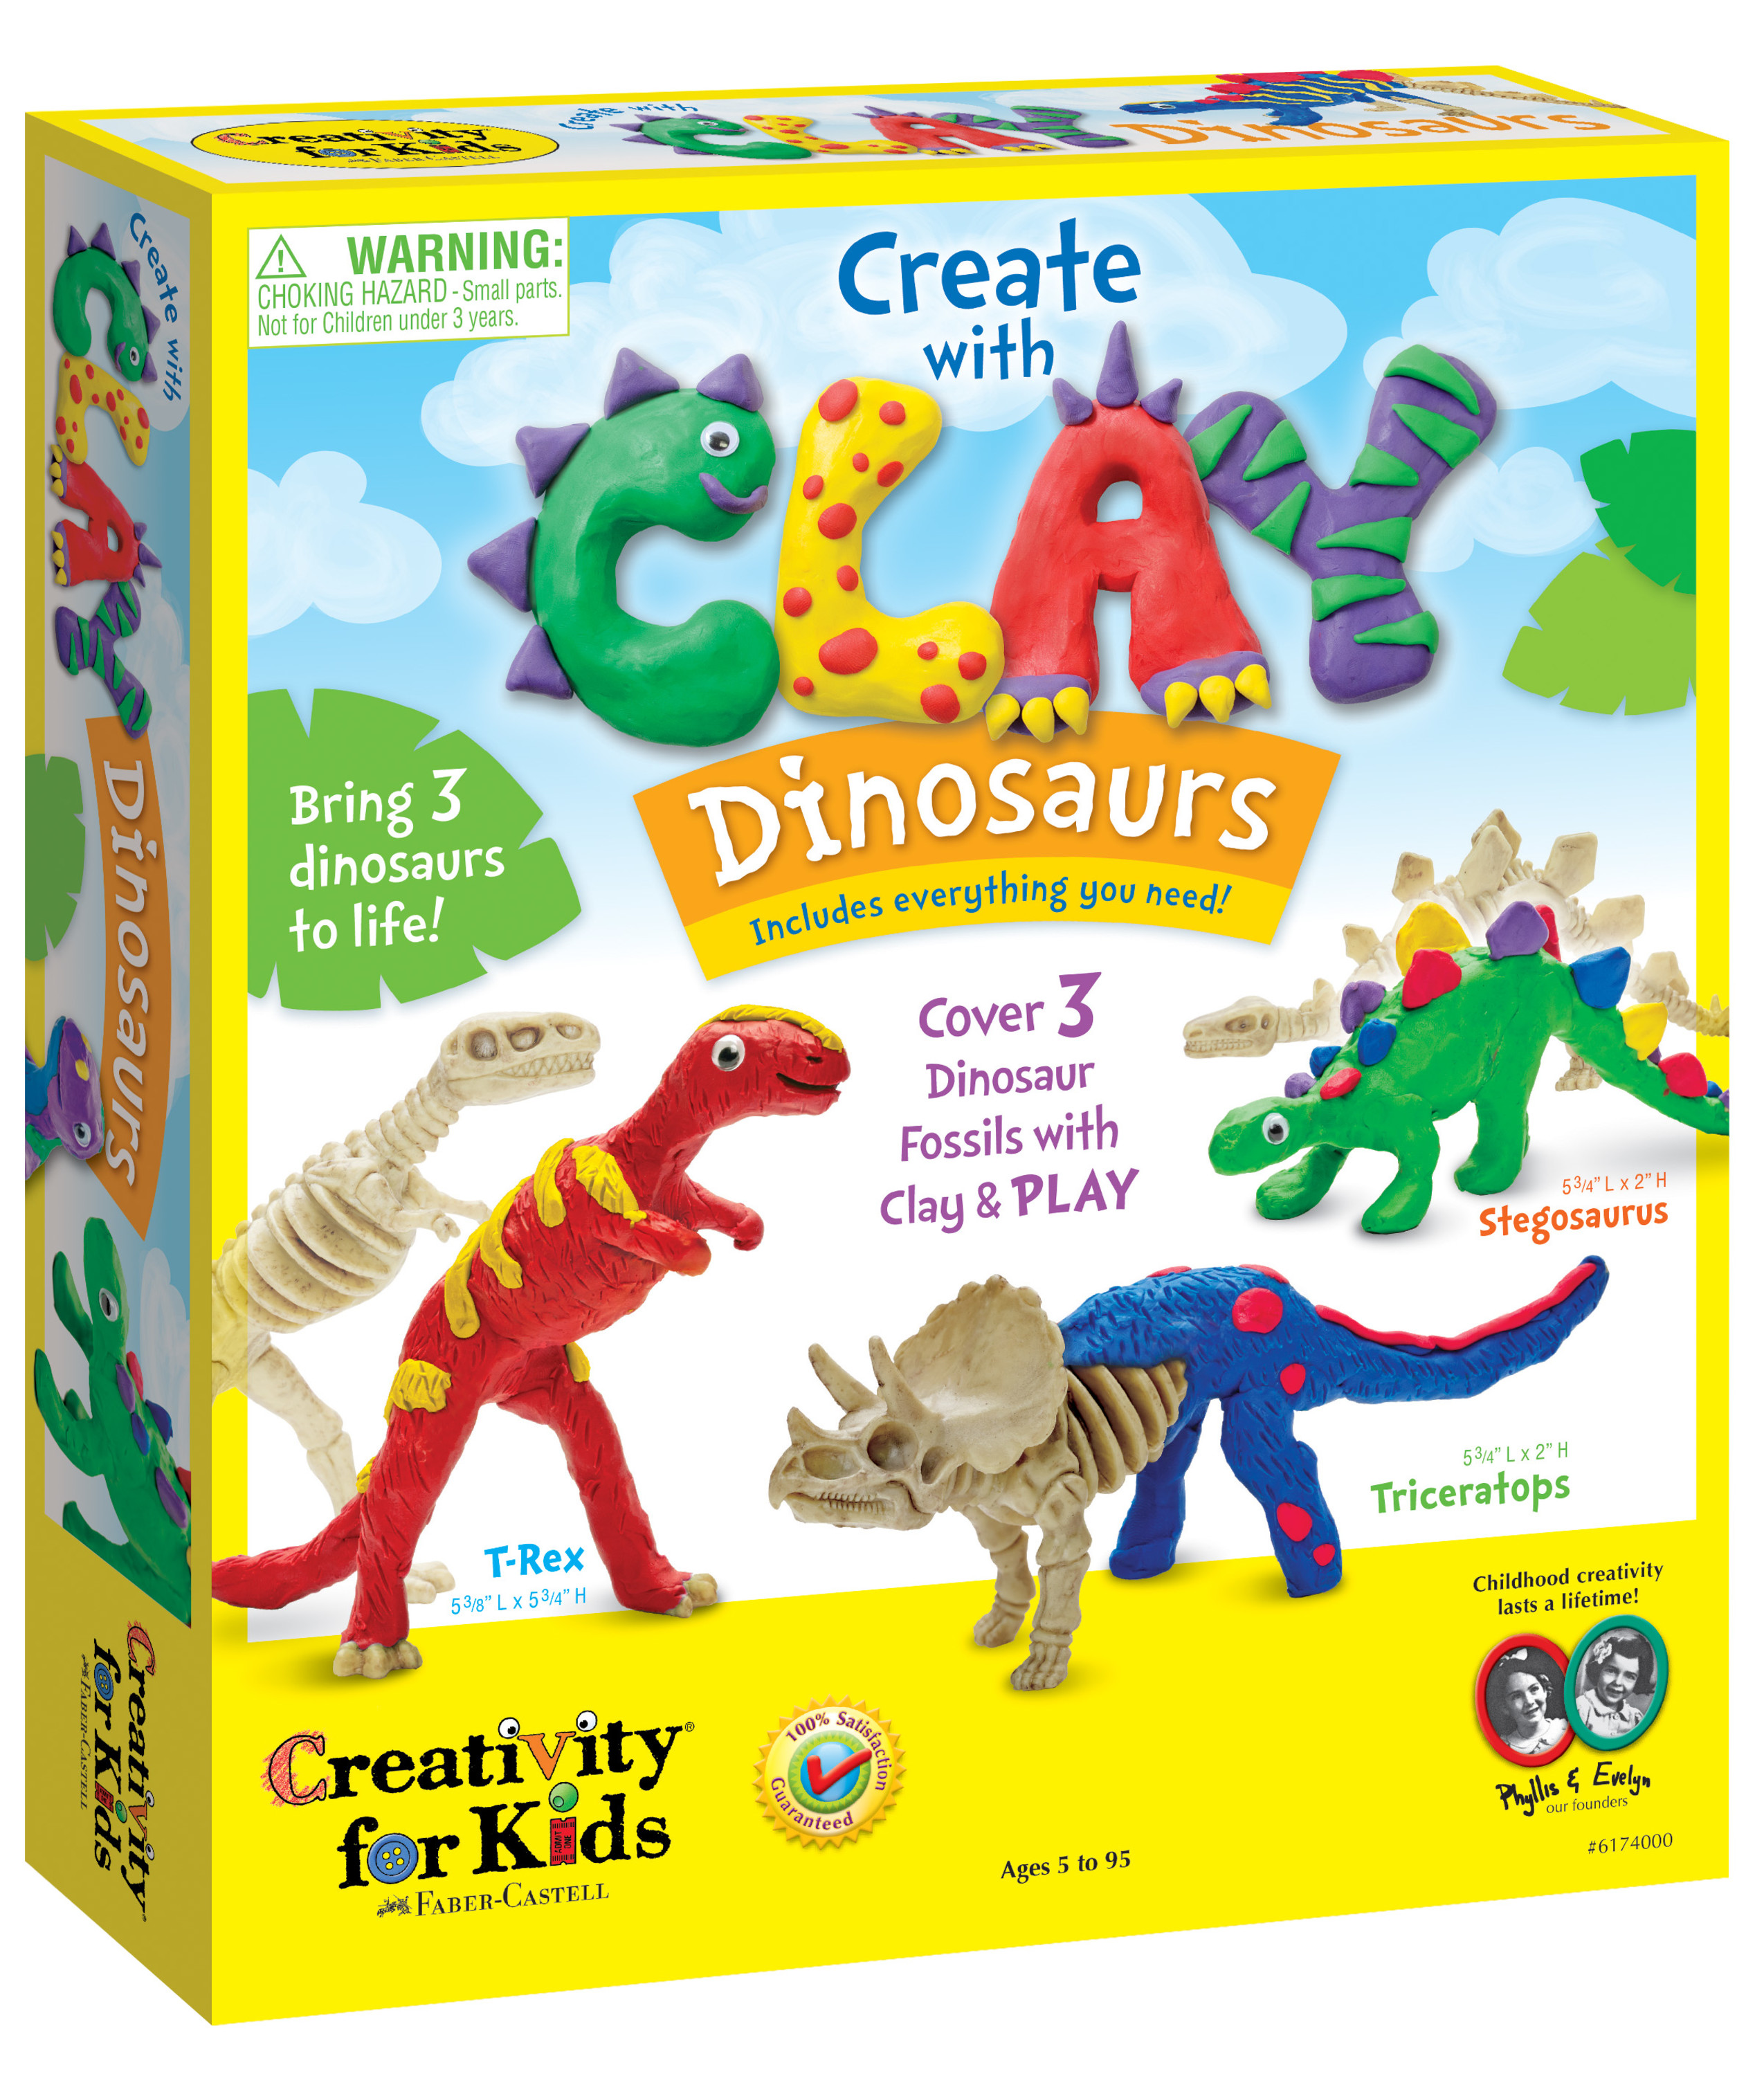 Hcssade Arts and Crafts Set for Kids Dinosaur Toys Painting Kit,Paint Your Own Dinosaur Figurines Toys Set for Boys Girls Age 3 4 5 6 7 8 Easter Gift